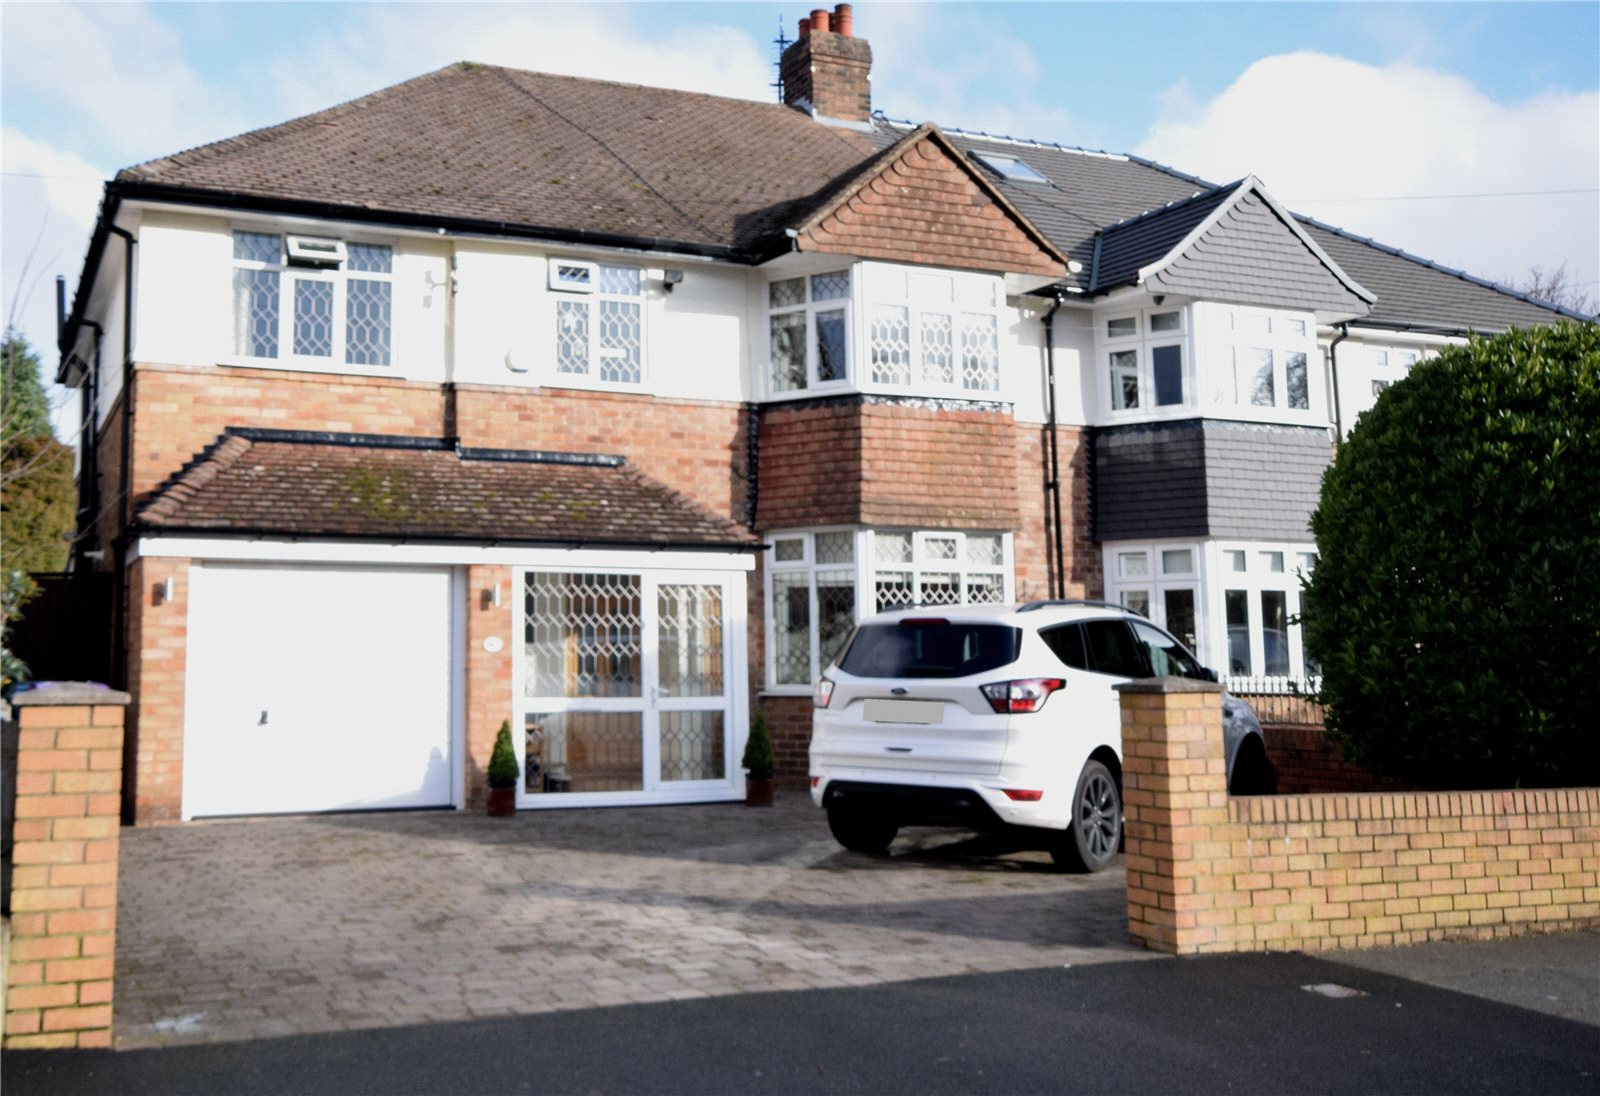 5 Bedrooms Semi Detached House for sale in Woolton Hill Road, Woolton, Liverpool, L25